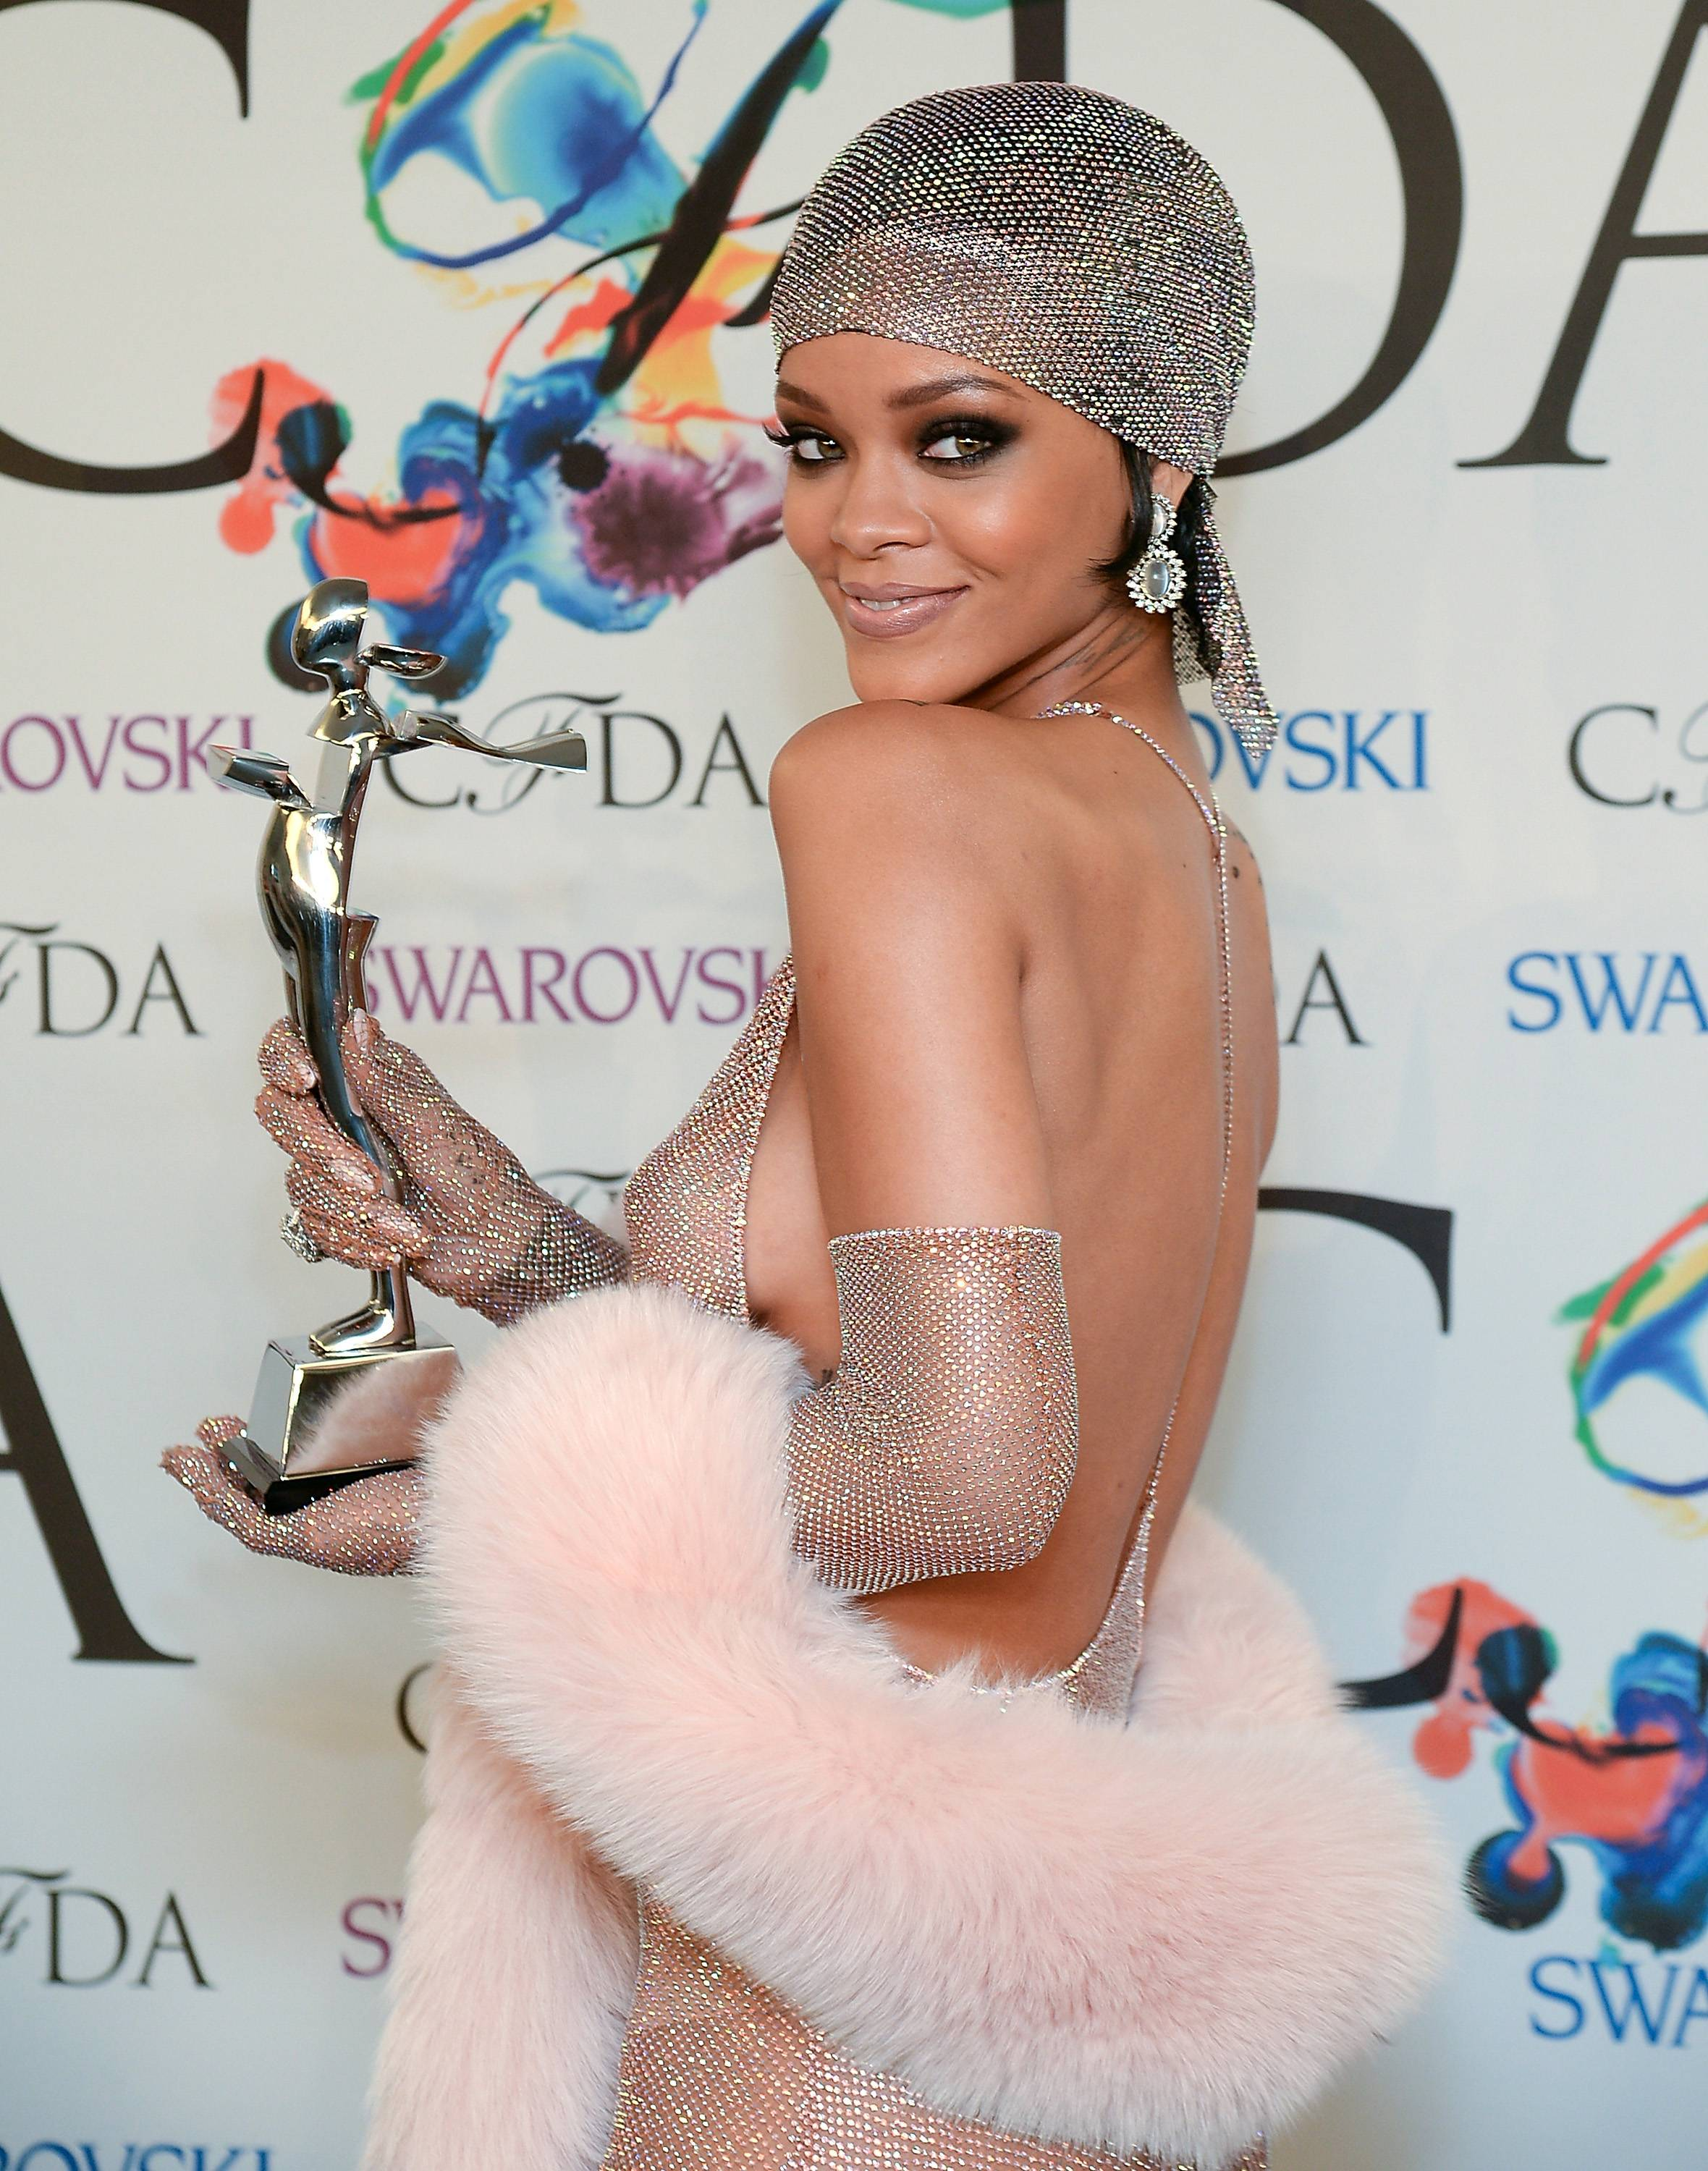 Fashion Icon Award honoree Rihanna poses with her award at the 2014 CFDA Fashion Awards at Alice Tully Hall on Monday, June 2, 2014, in New York.